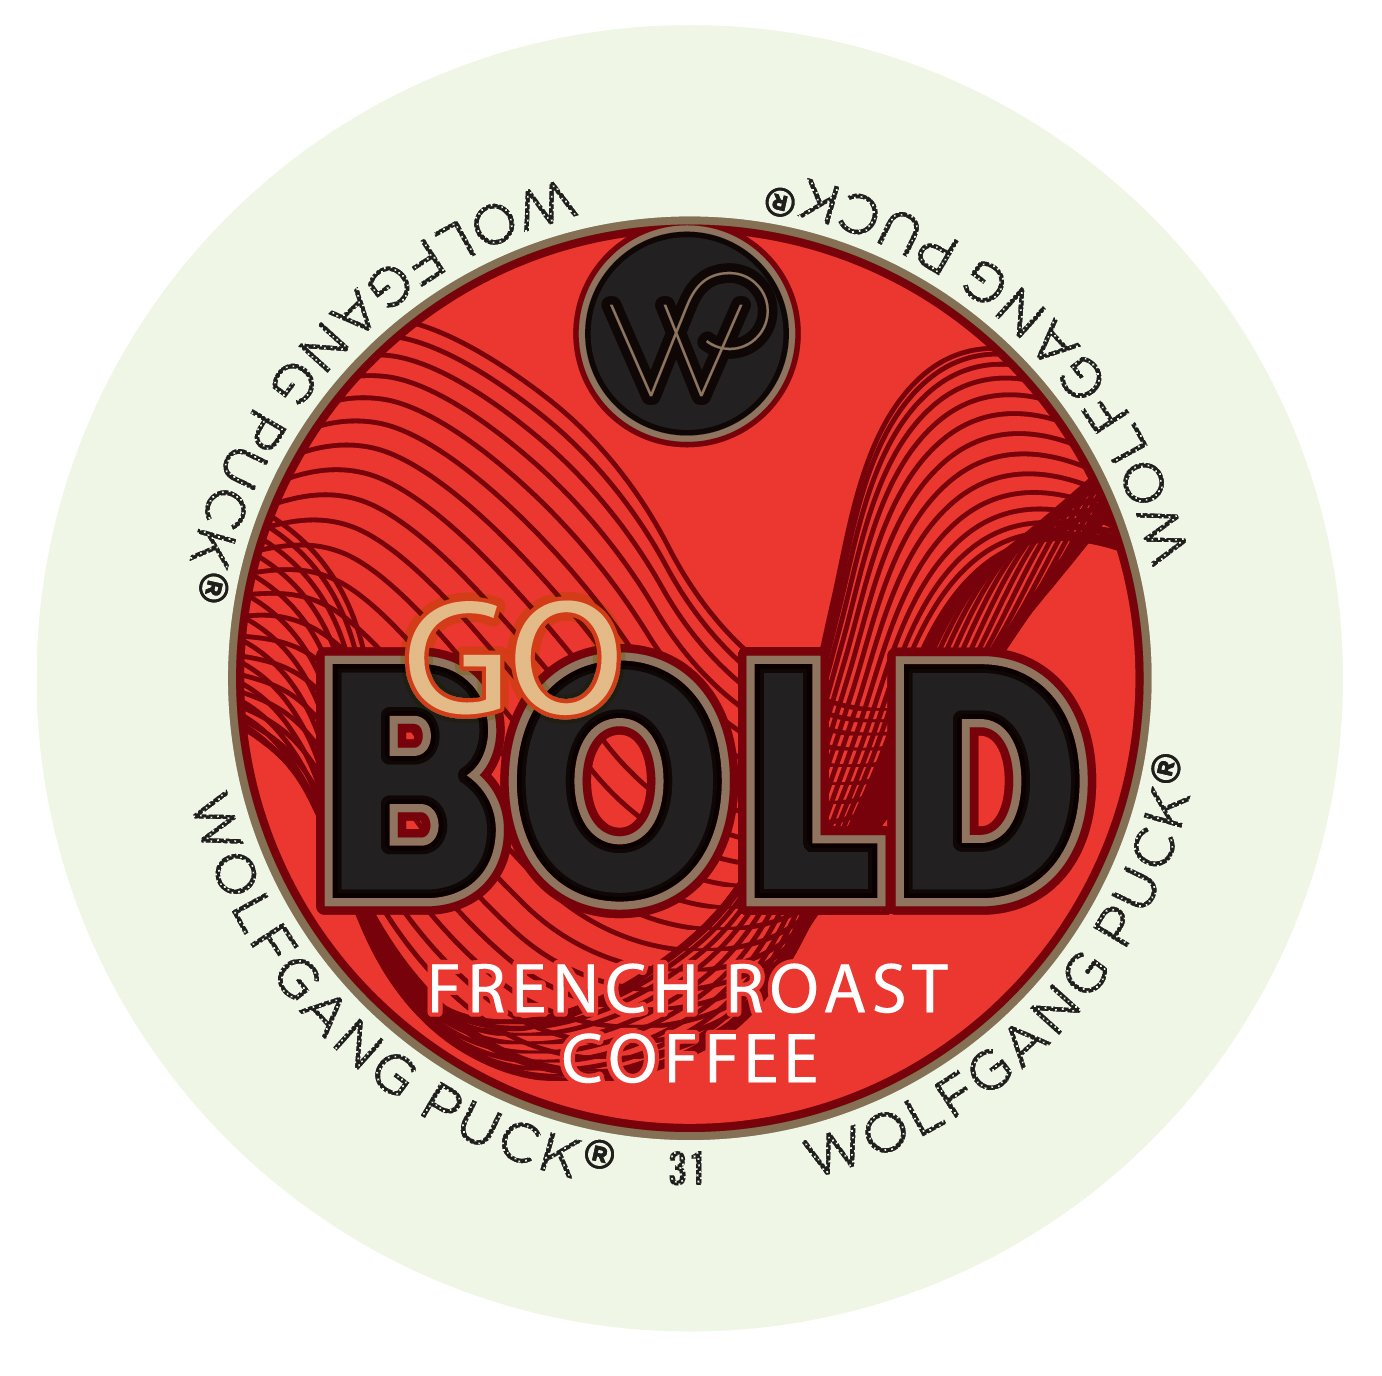 Wolfgang Puck Go Bold French Roast Coffee Keurig K-Cups, 96 Count by Wolfgang Puck